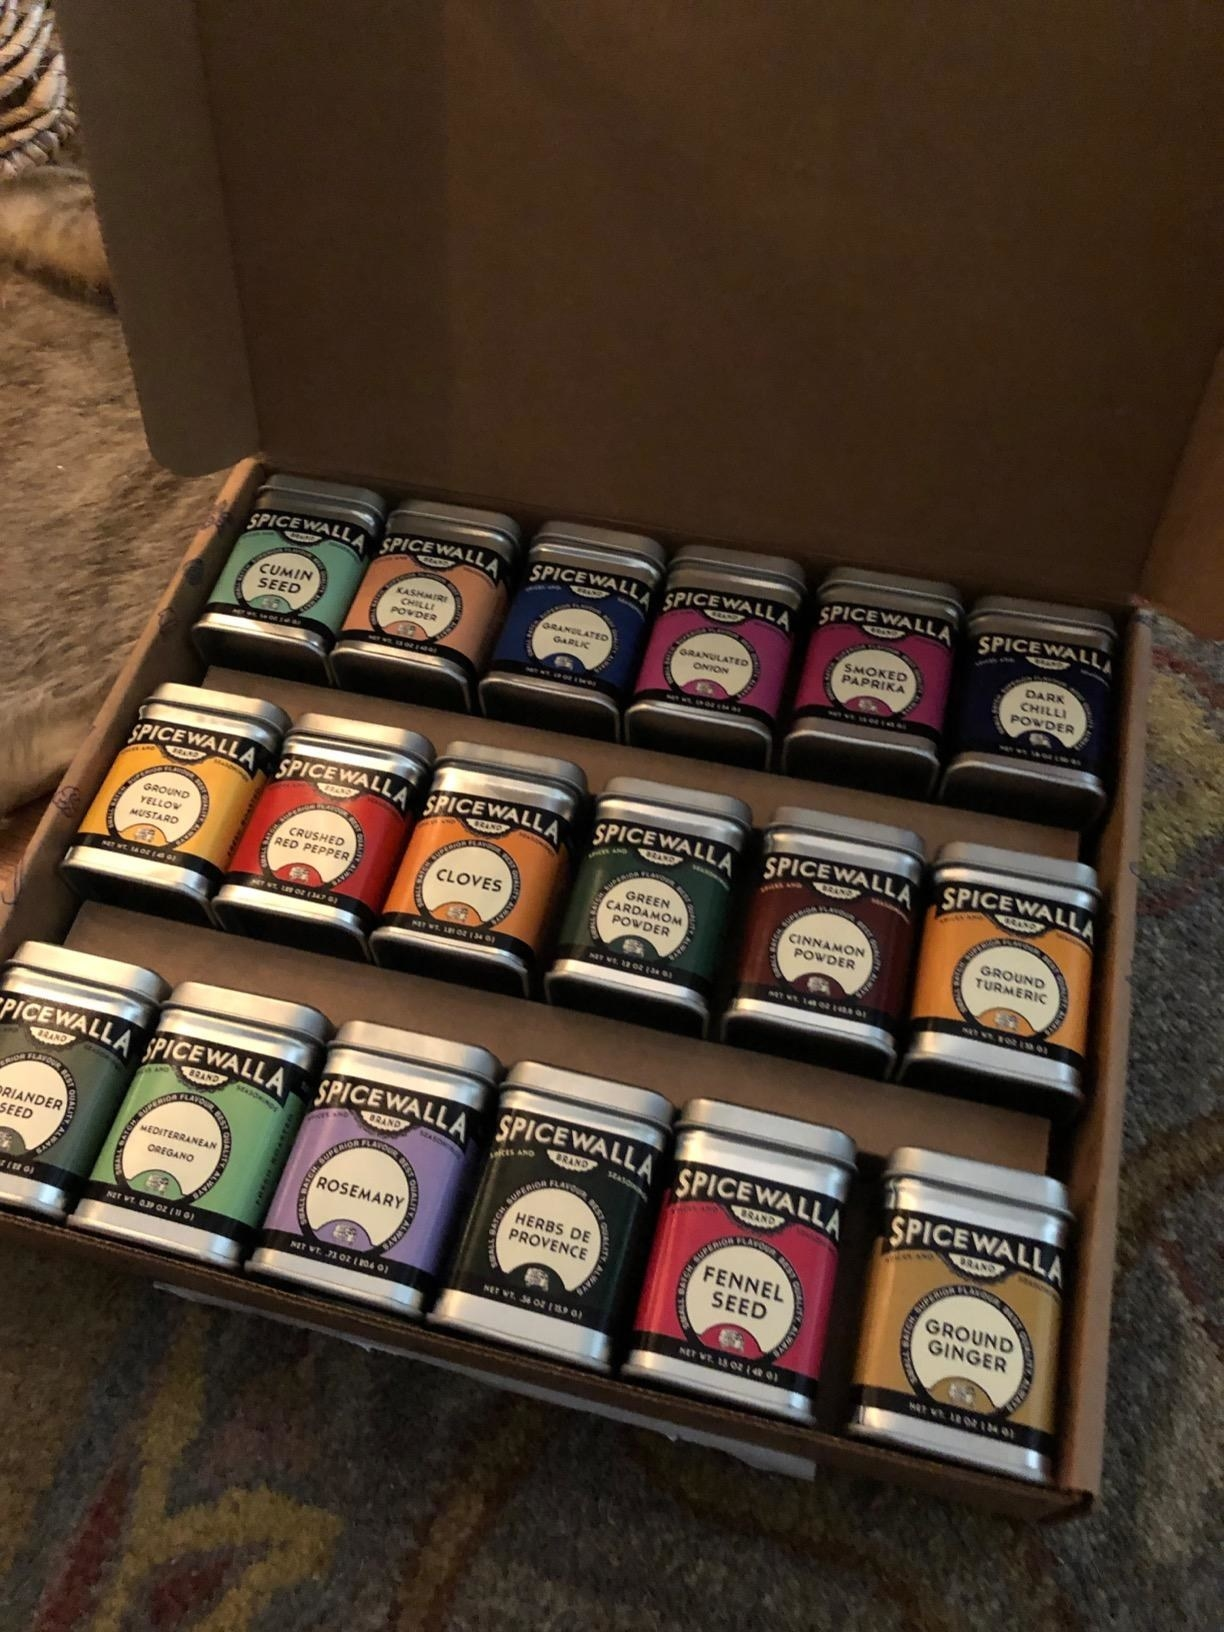 the 18 spices and seasonings in a box